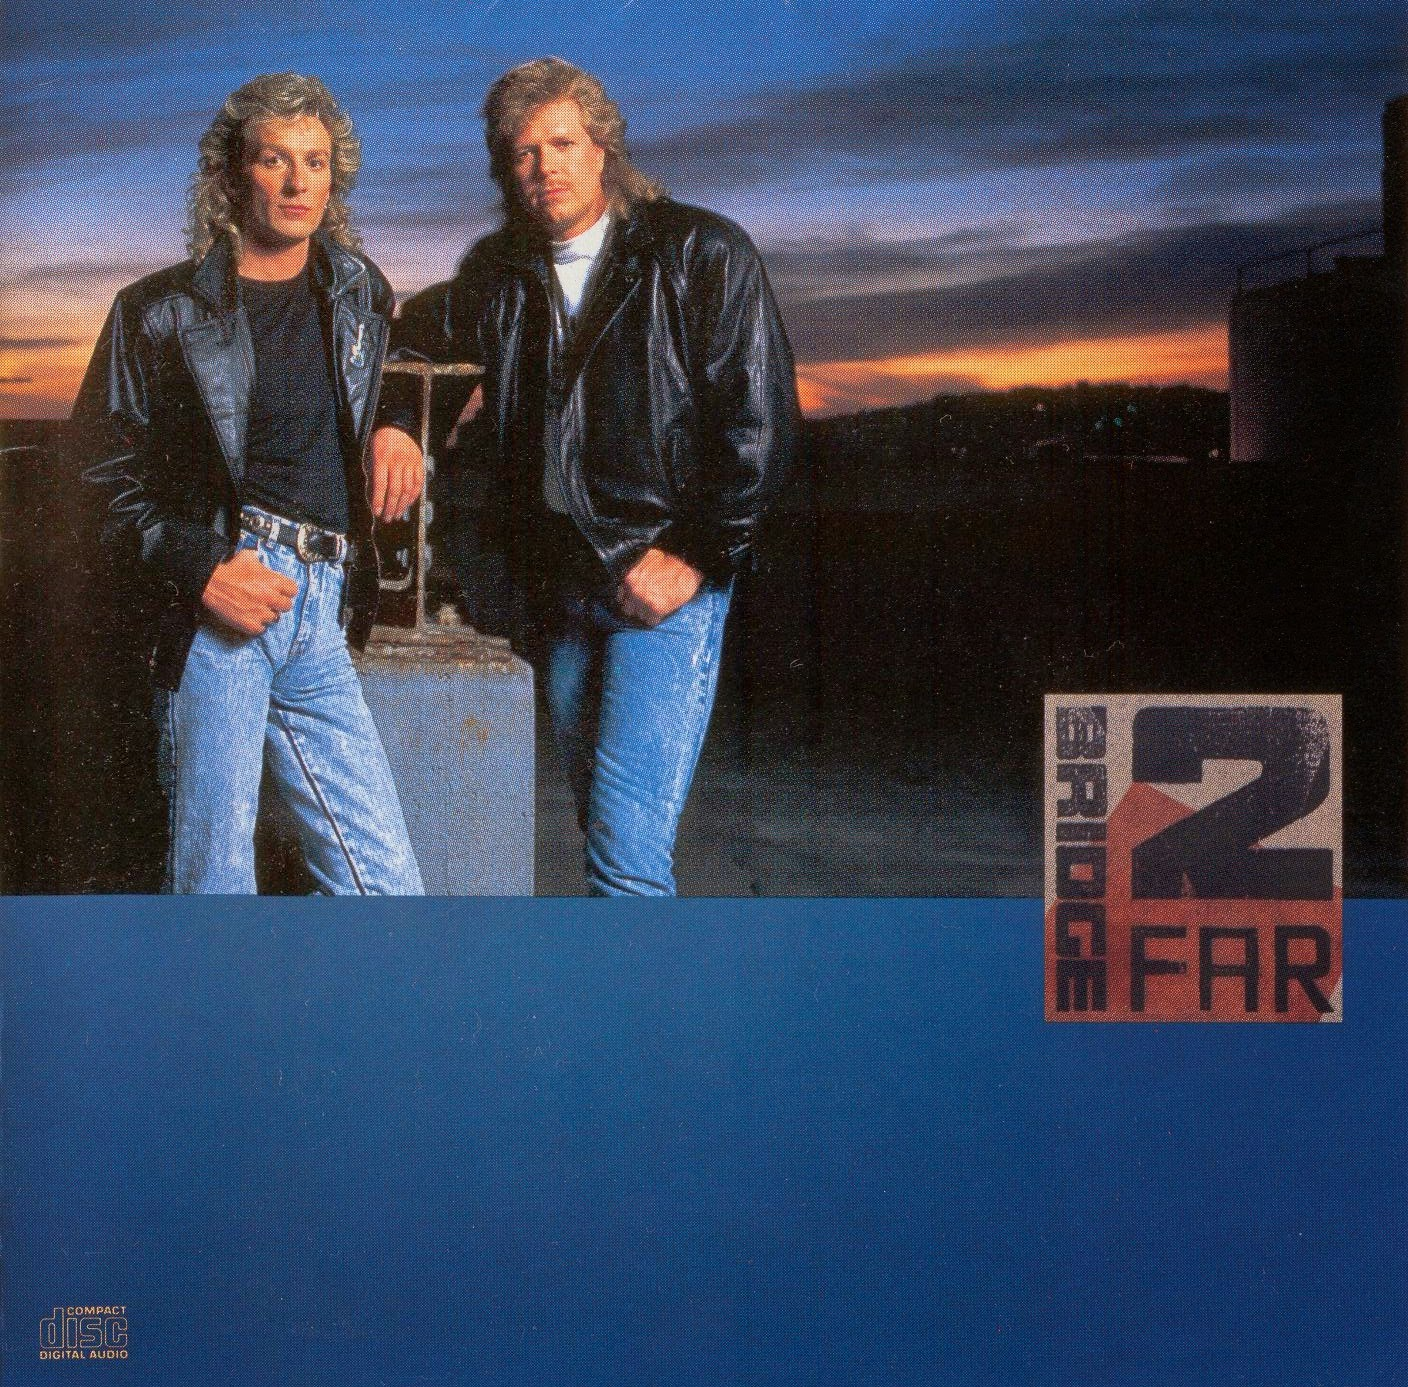 Bridge 2 Far st 1989 aor melodic rock